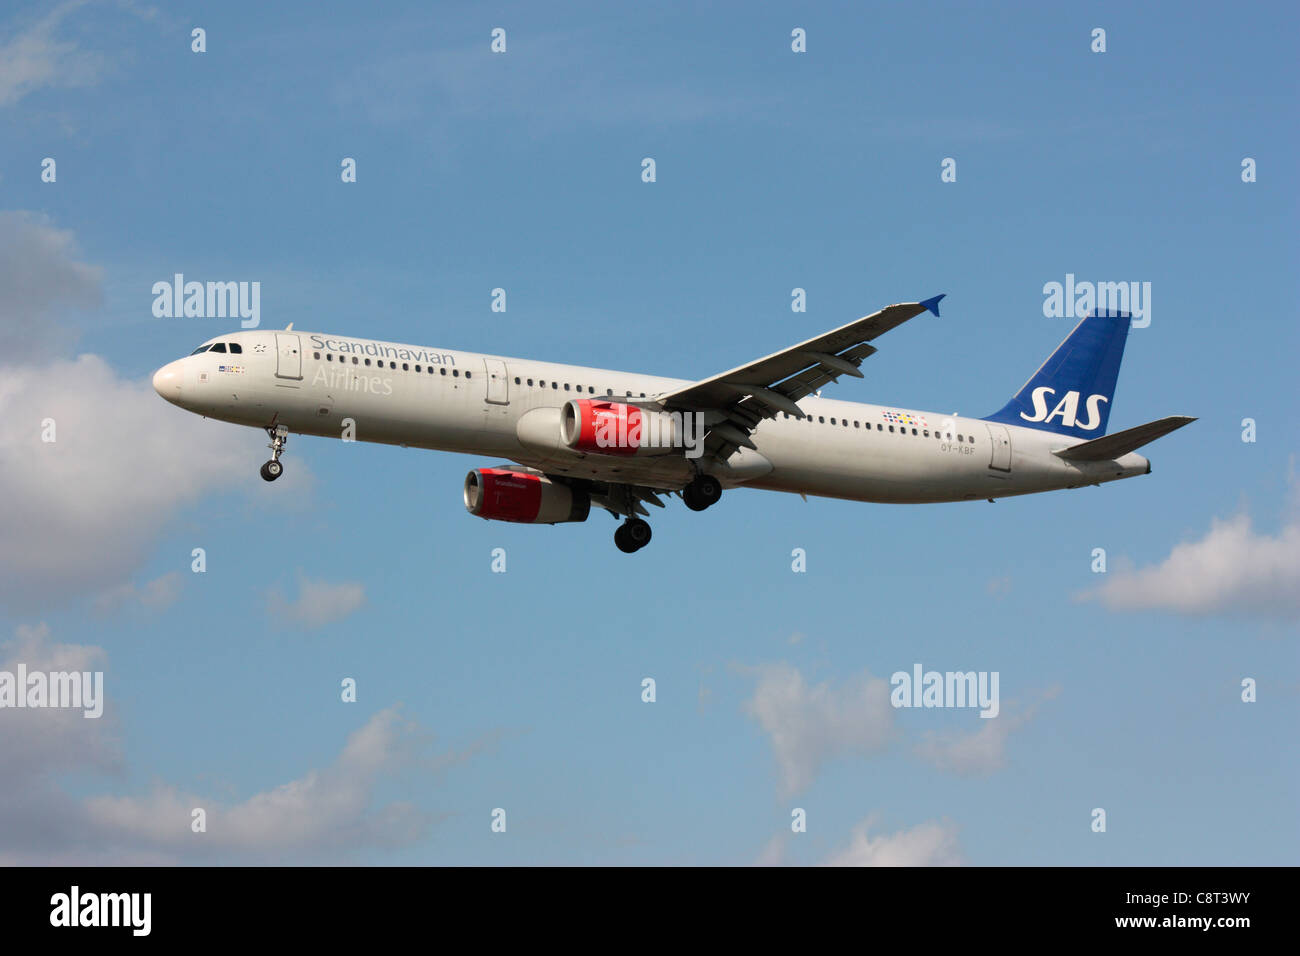 SAS Scandinavian Airlines Airbus A321 passenger jet plane flying on approach - Stock Image